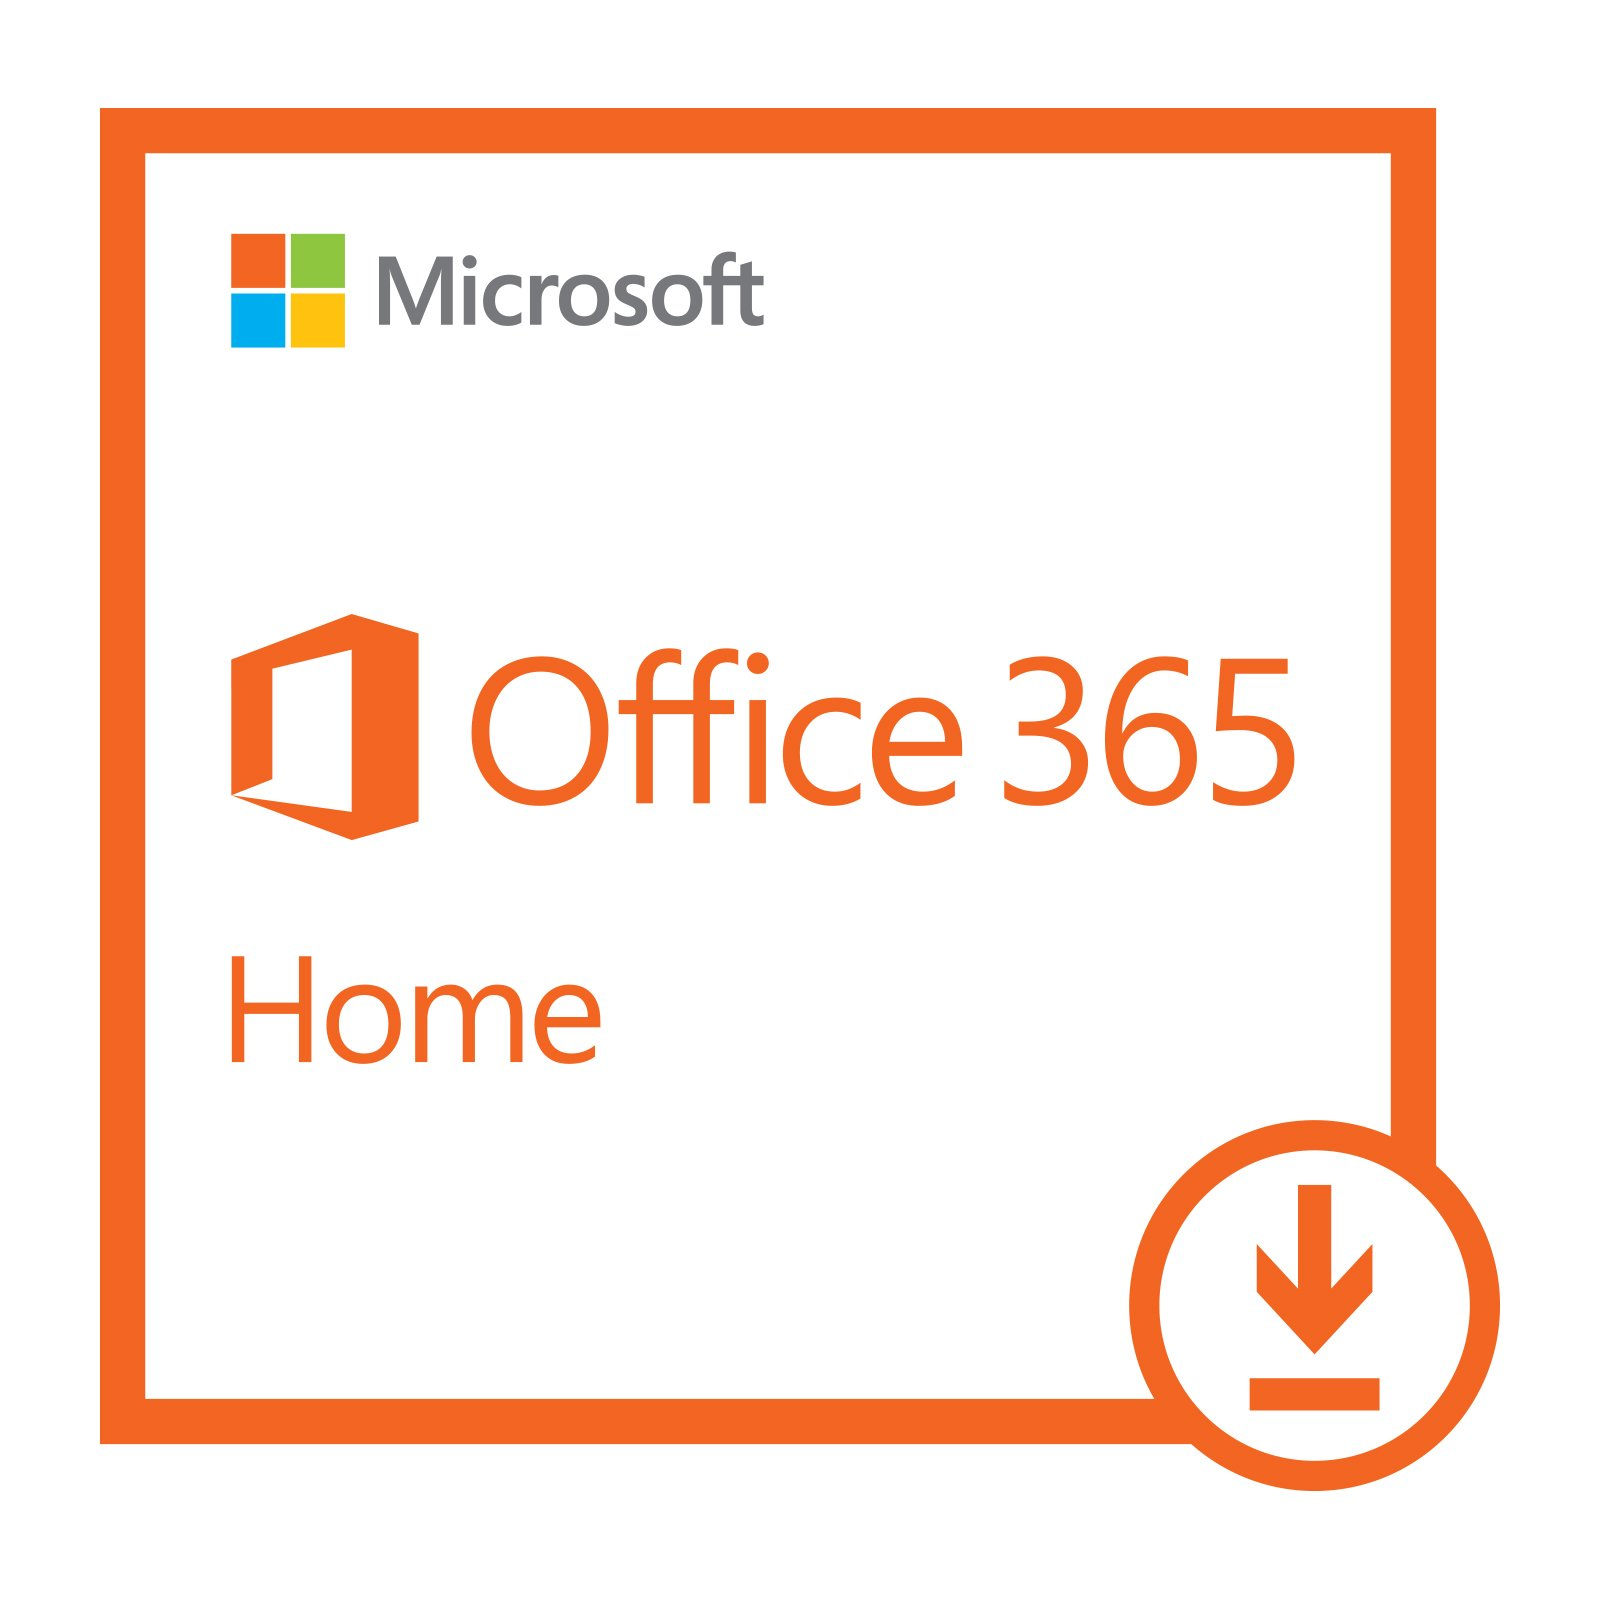 Microsoft Office 365 Home | 1-year subscription, 5 users, PC/Mac Download by Microsoft